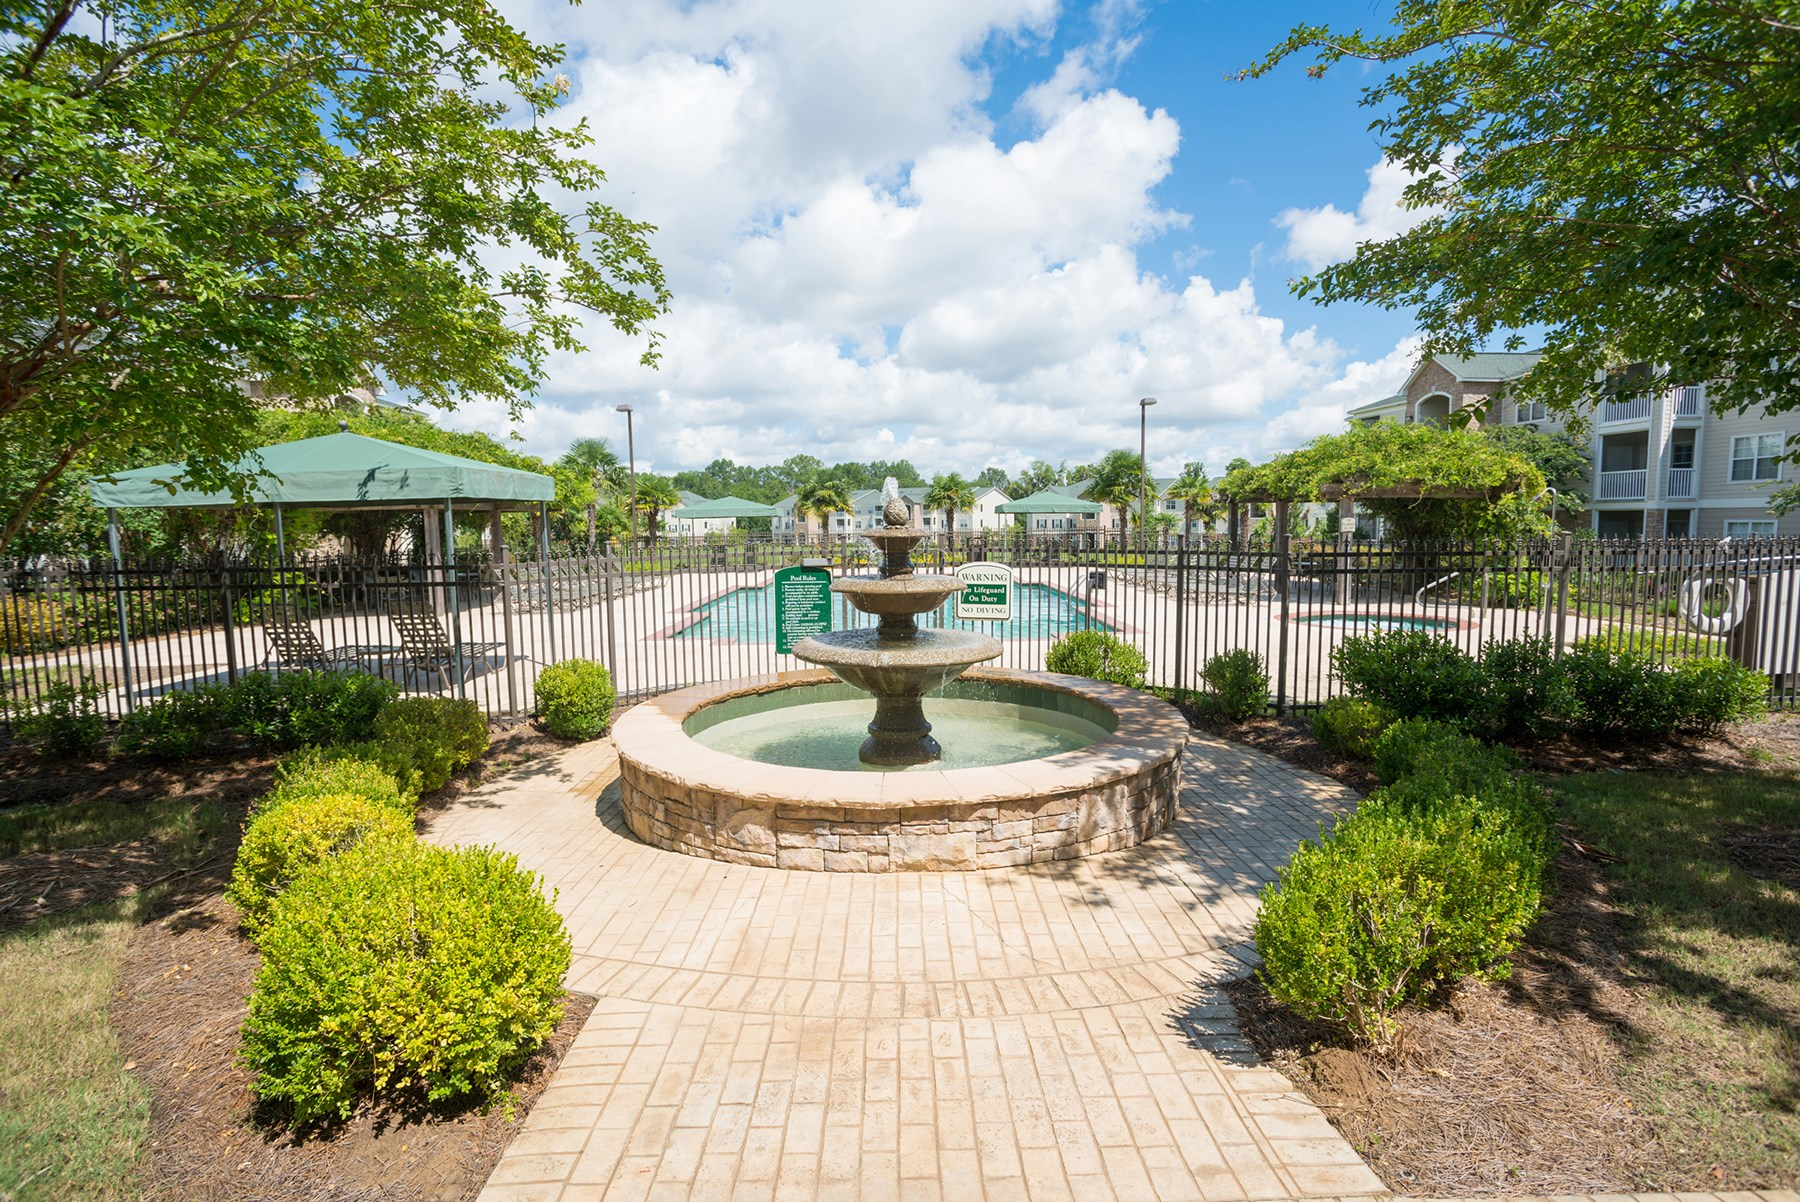 Fountain at Verandas at Taylor Oaks Apartments in Montgomery, AL